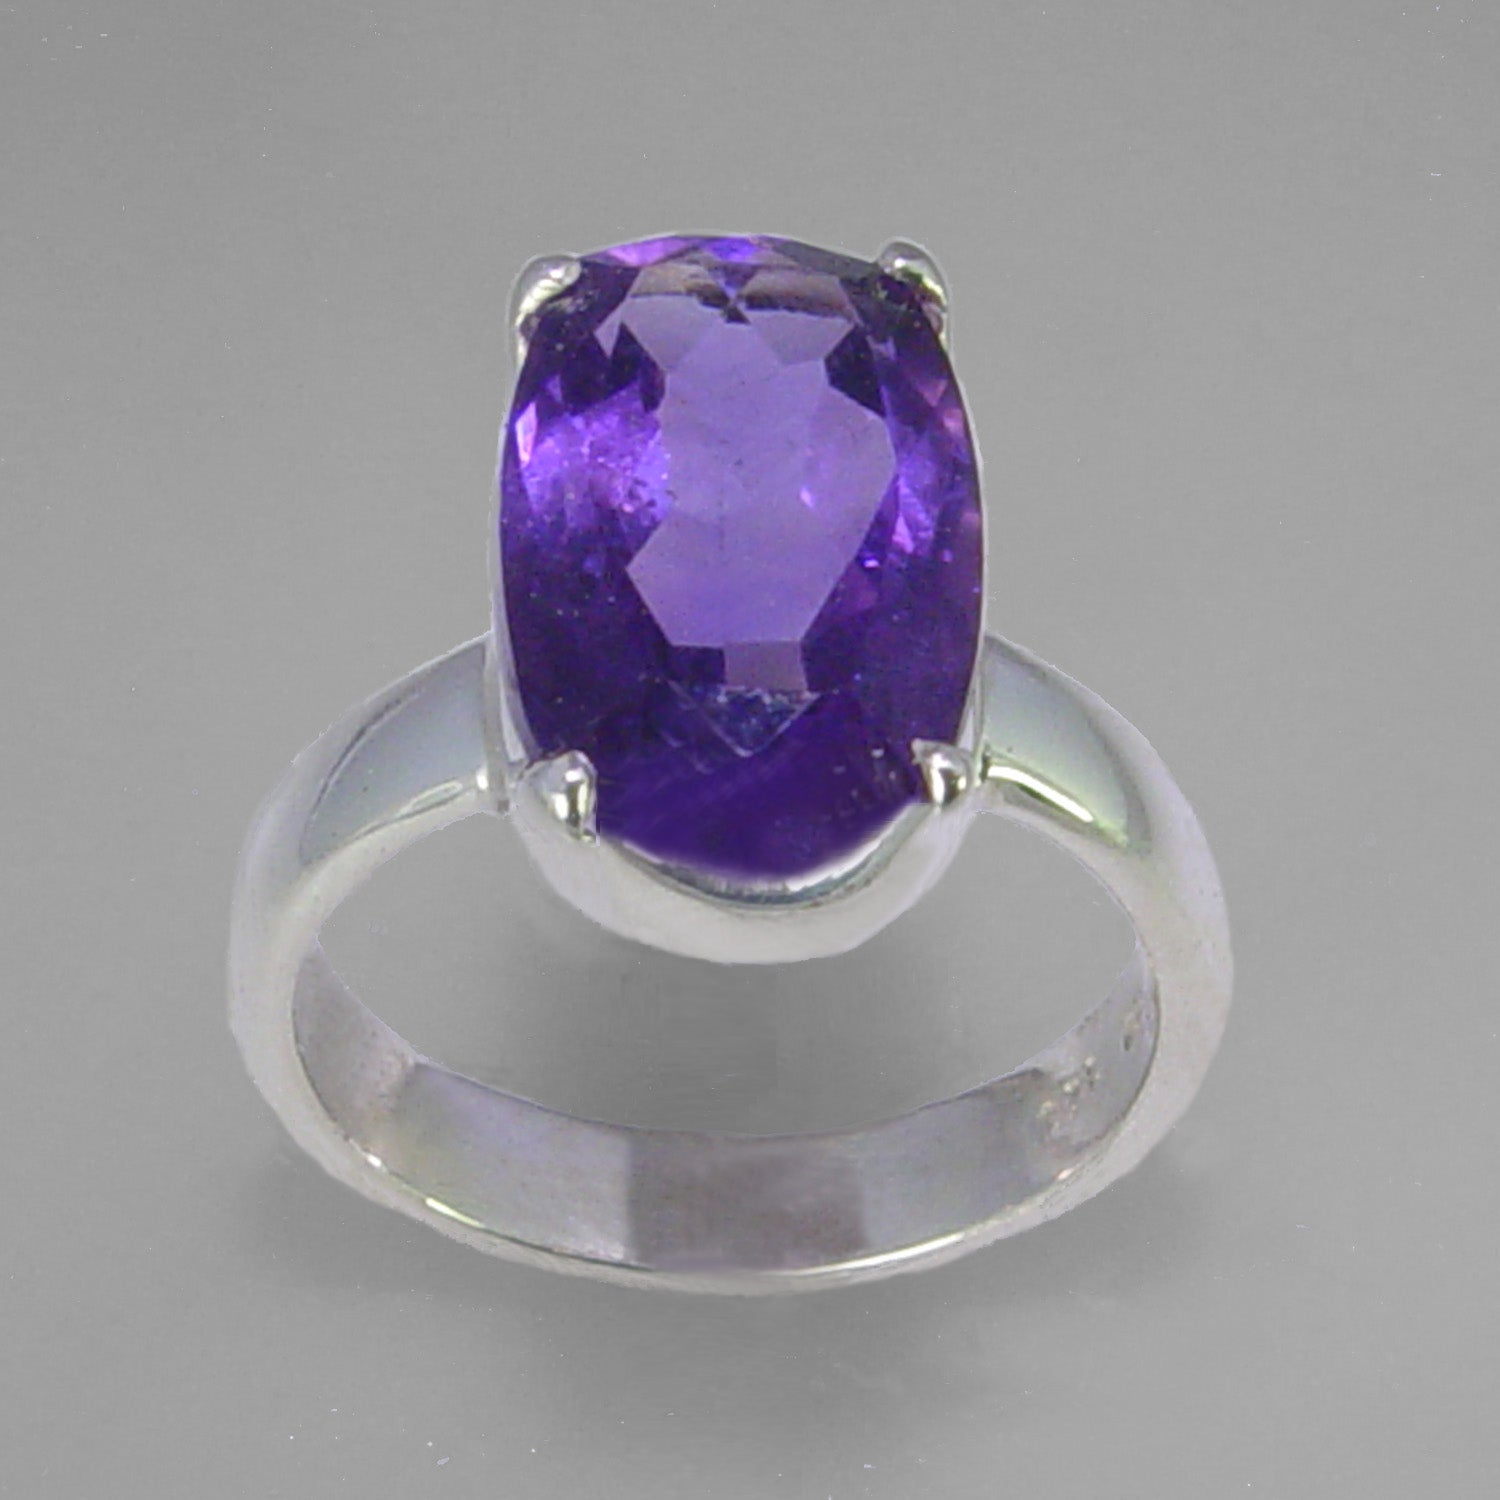 Amethyst 5.8 ct Antique Emerald Cut Sterling Silver Ring, Size 7.5